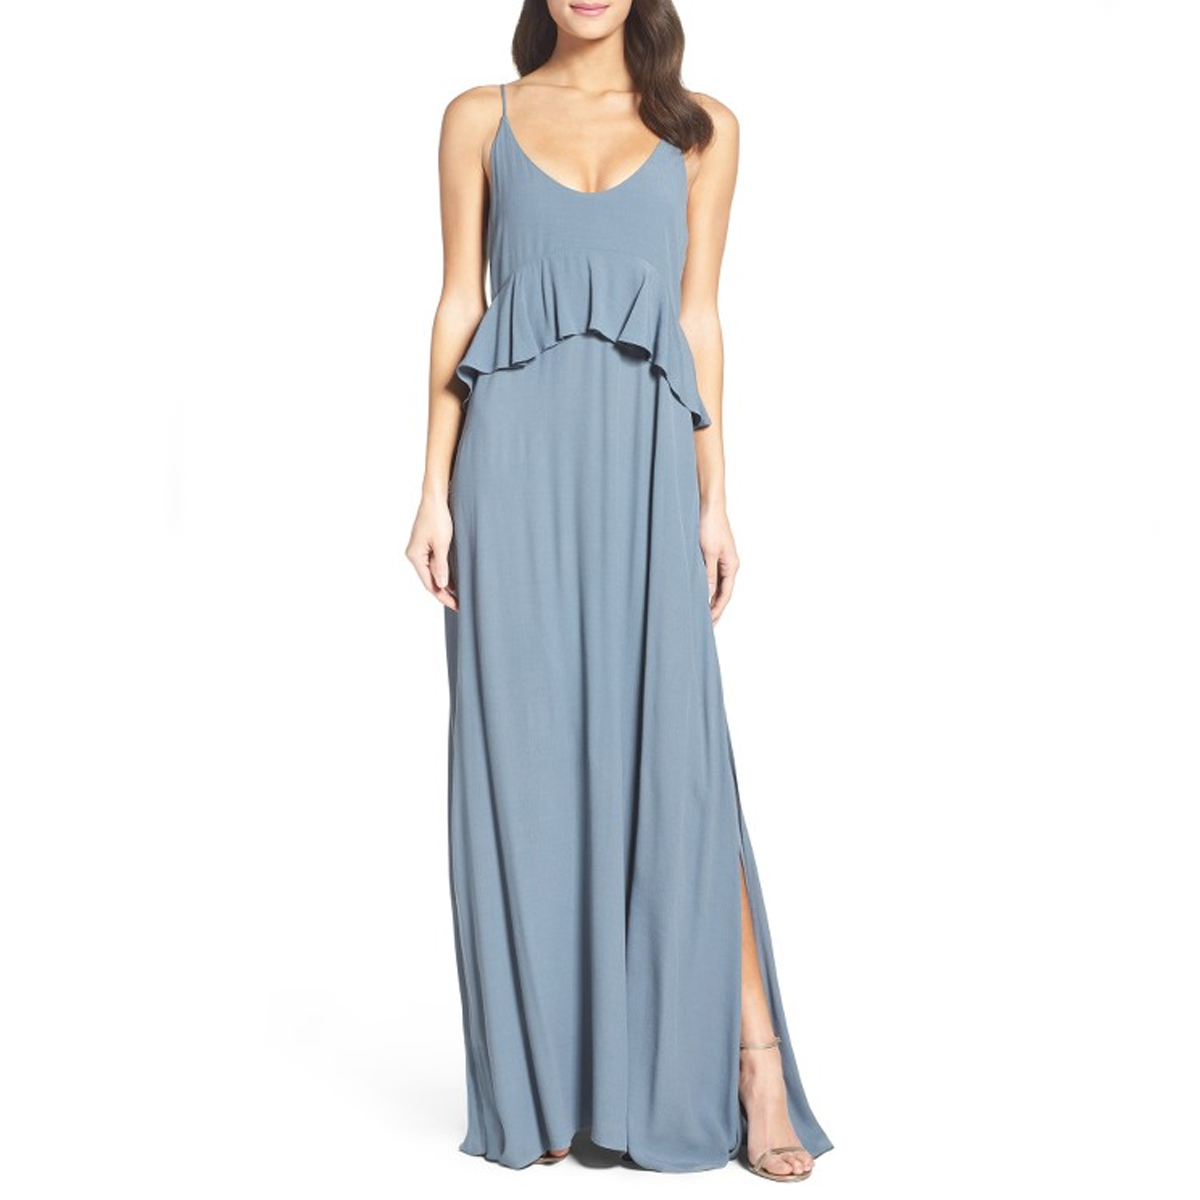 Something Blue Nordstrom Maxi